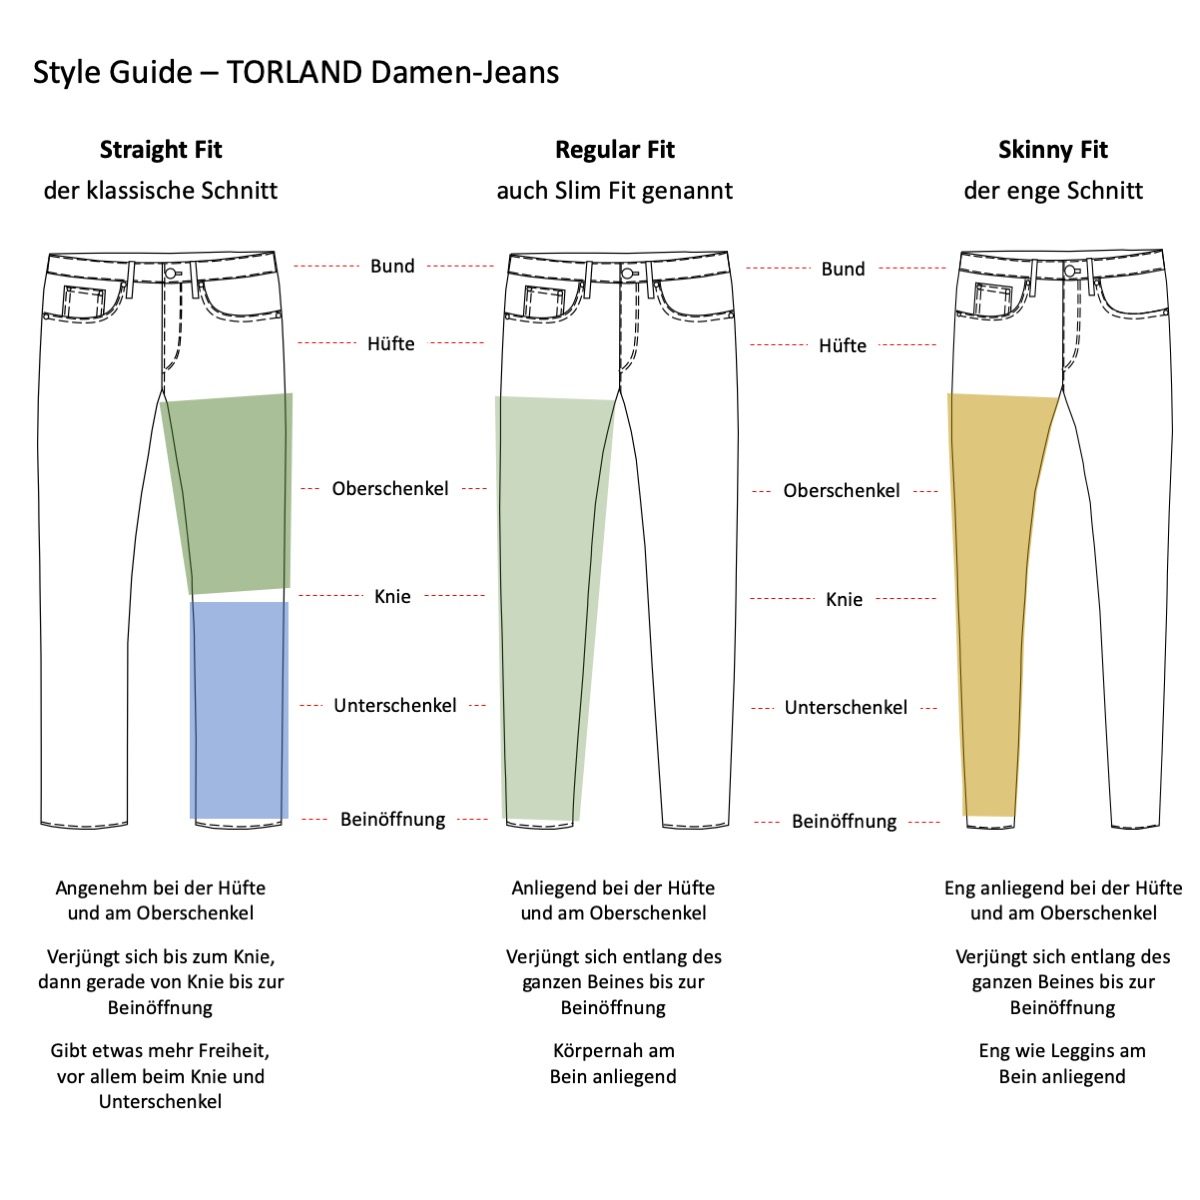 Style Guide - TORLAND Damen-Jeans